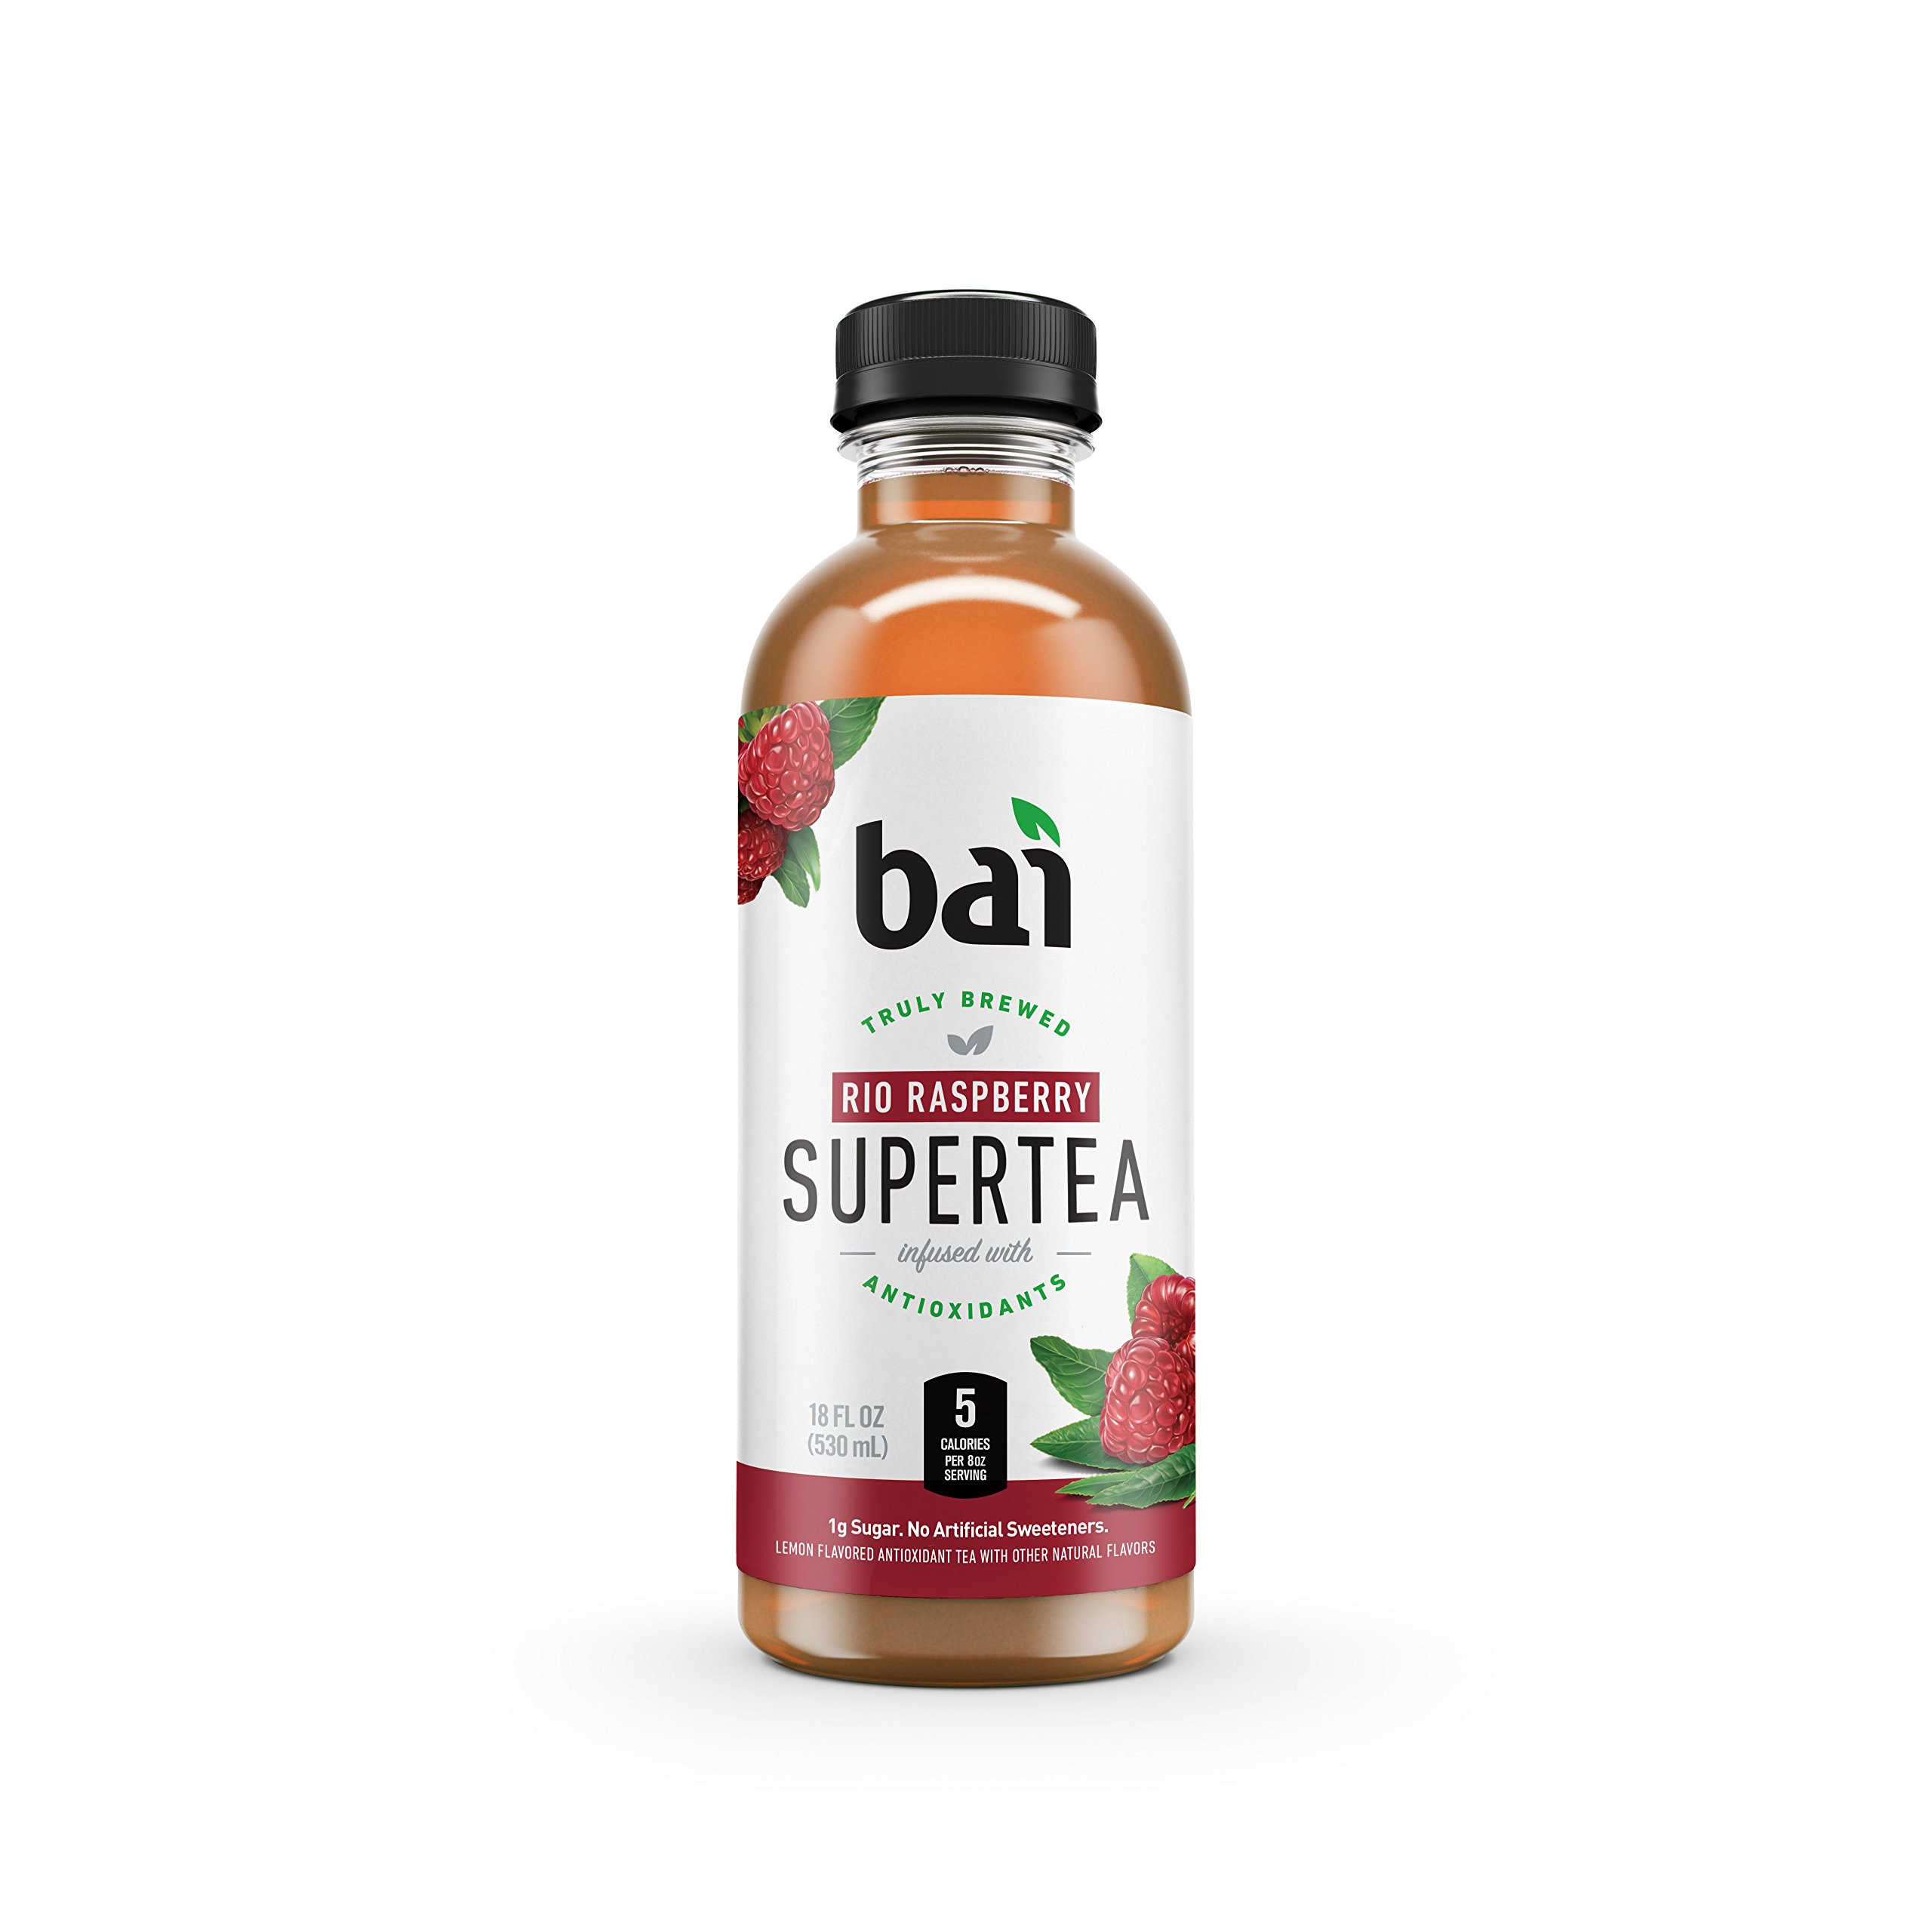 Bai Iced Tea, Rio Raspberry, Antioxidant Infused Supertea, Crafted with Real Tea (Black Tea, White Tea), 18 Fluid Ounce Bottles, 12 count by Bai